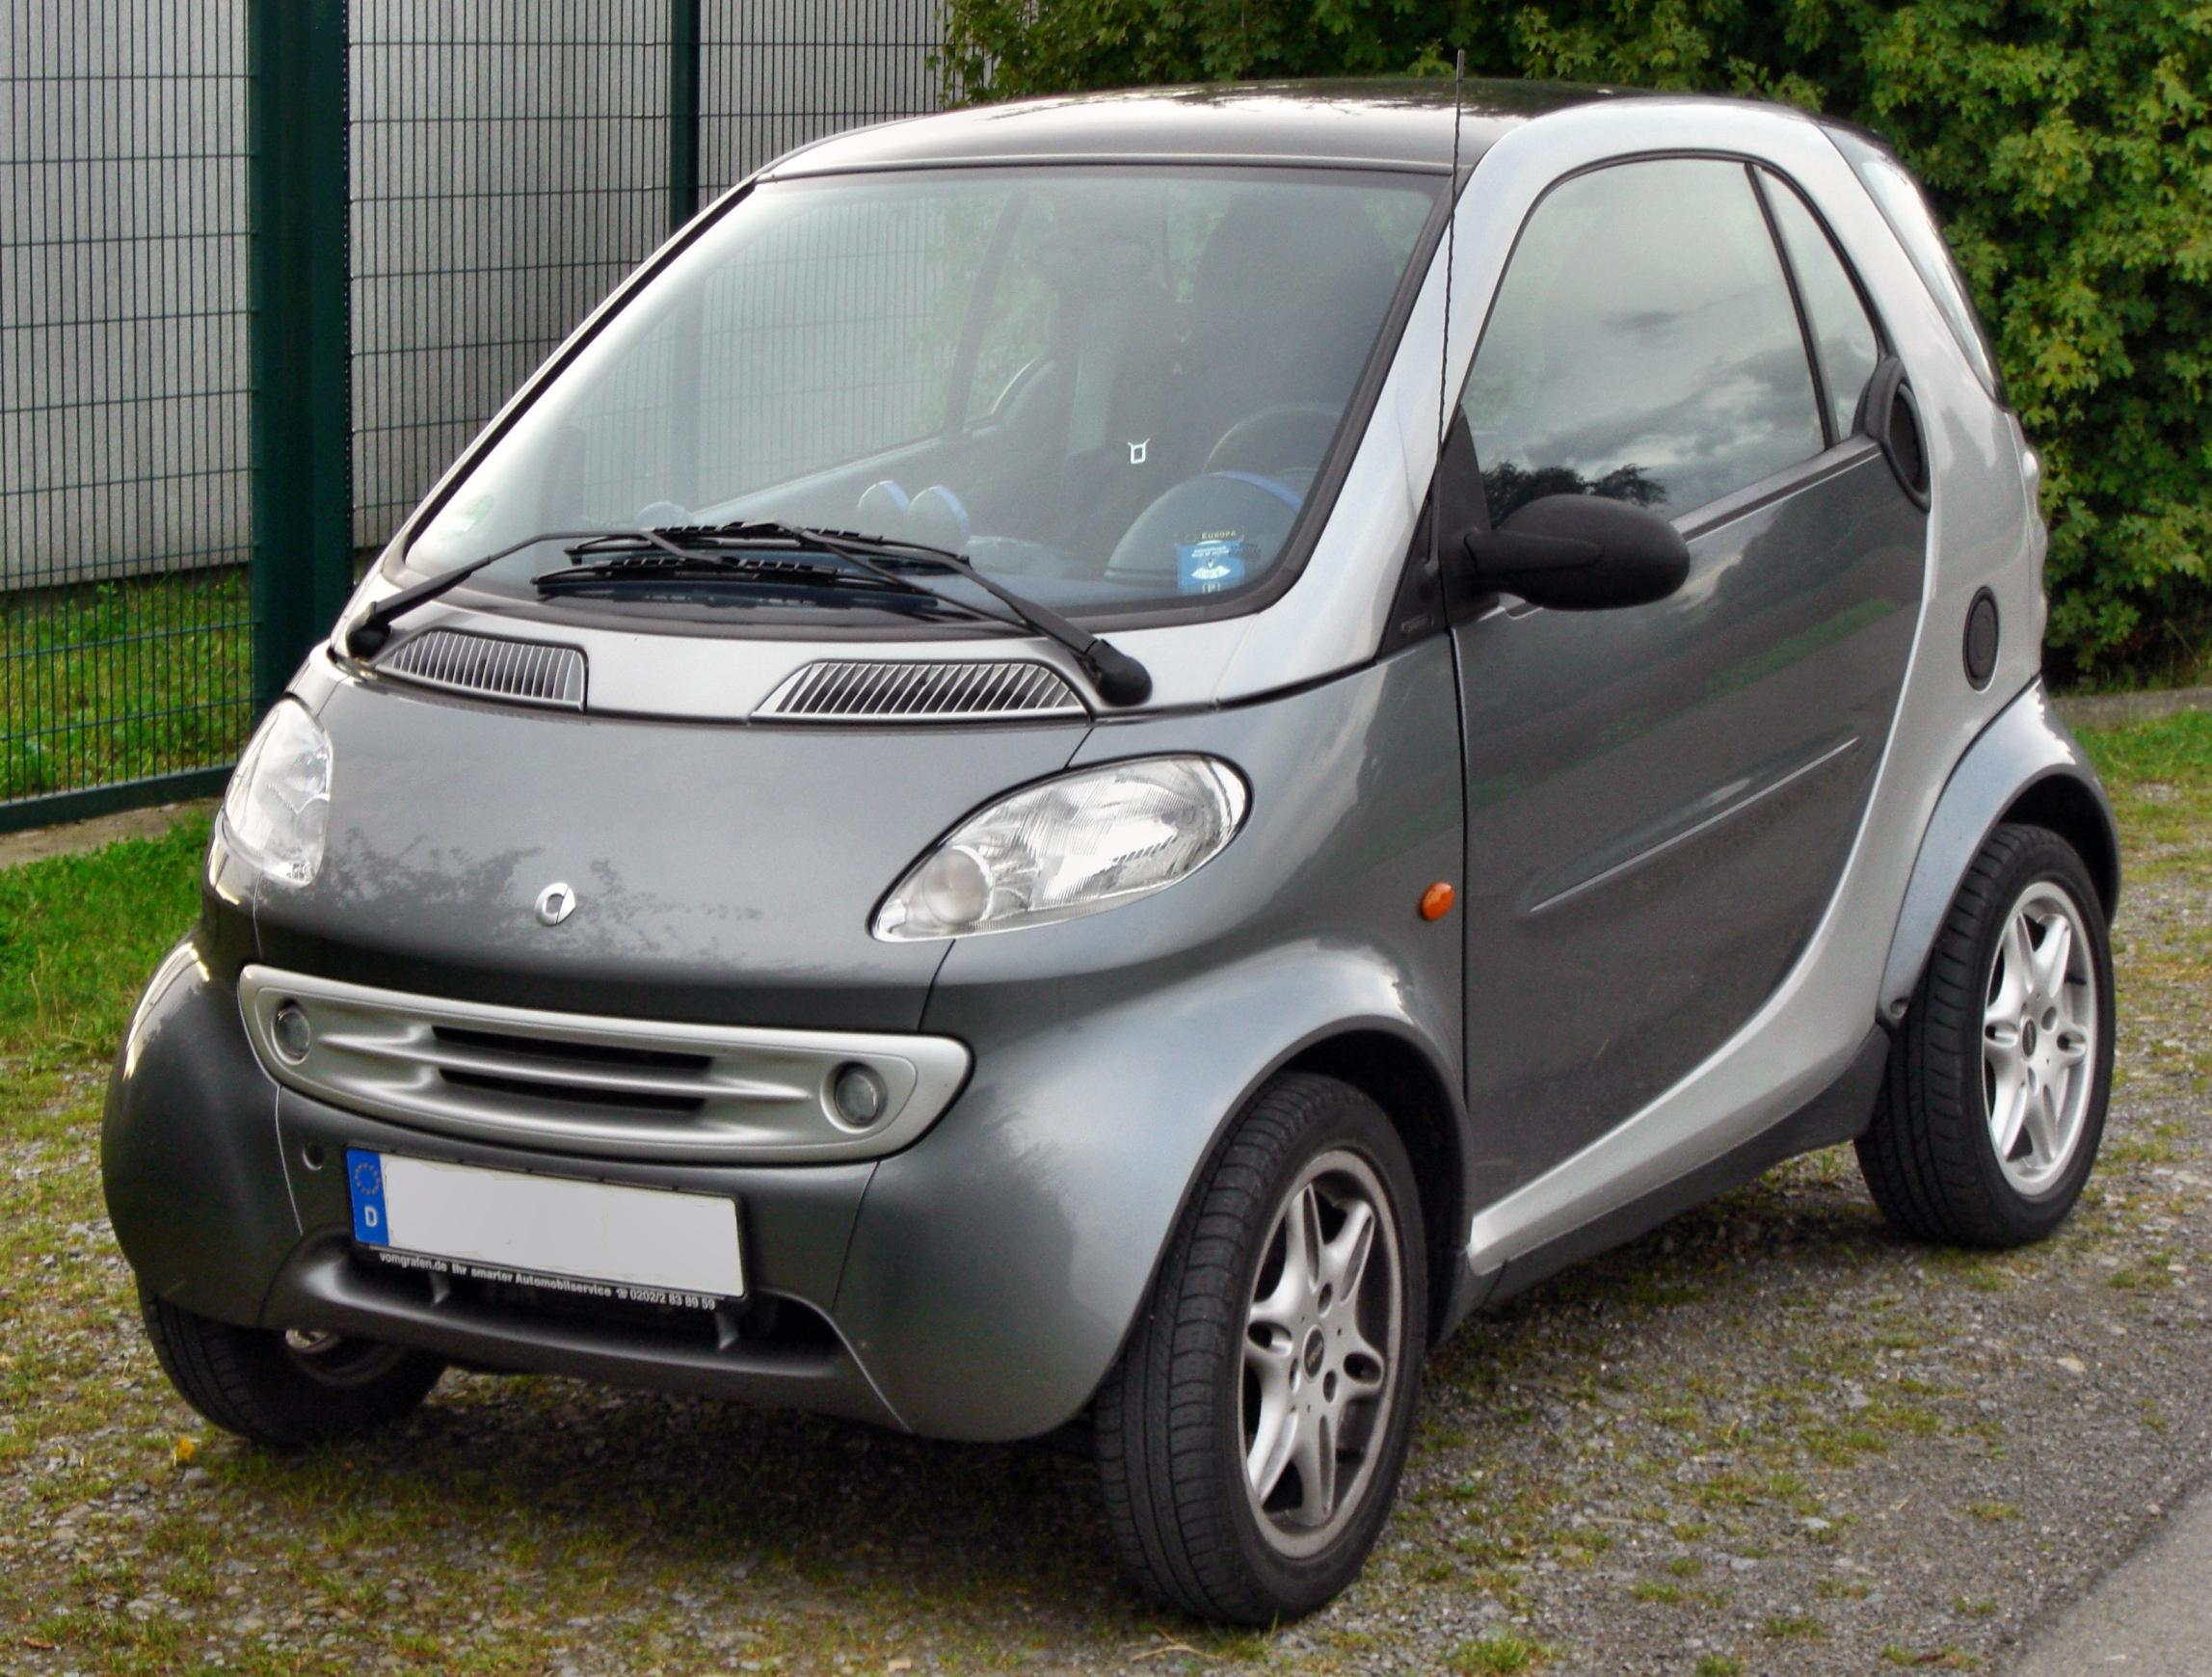 2 Person Smart Car >> SMART - Image #2